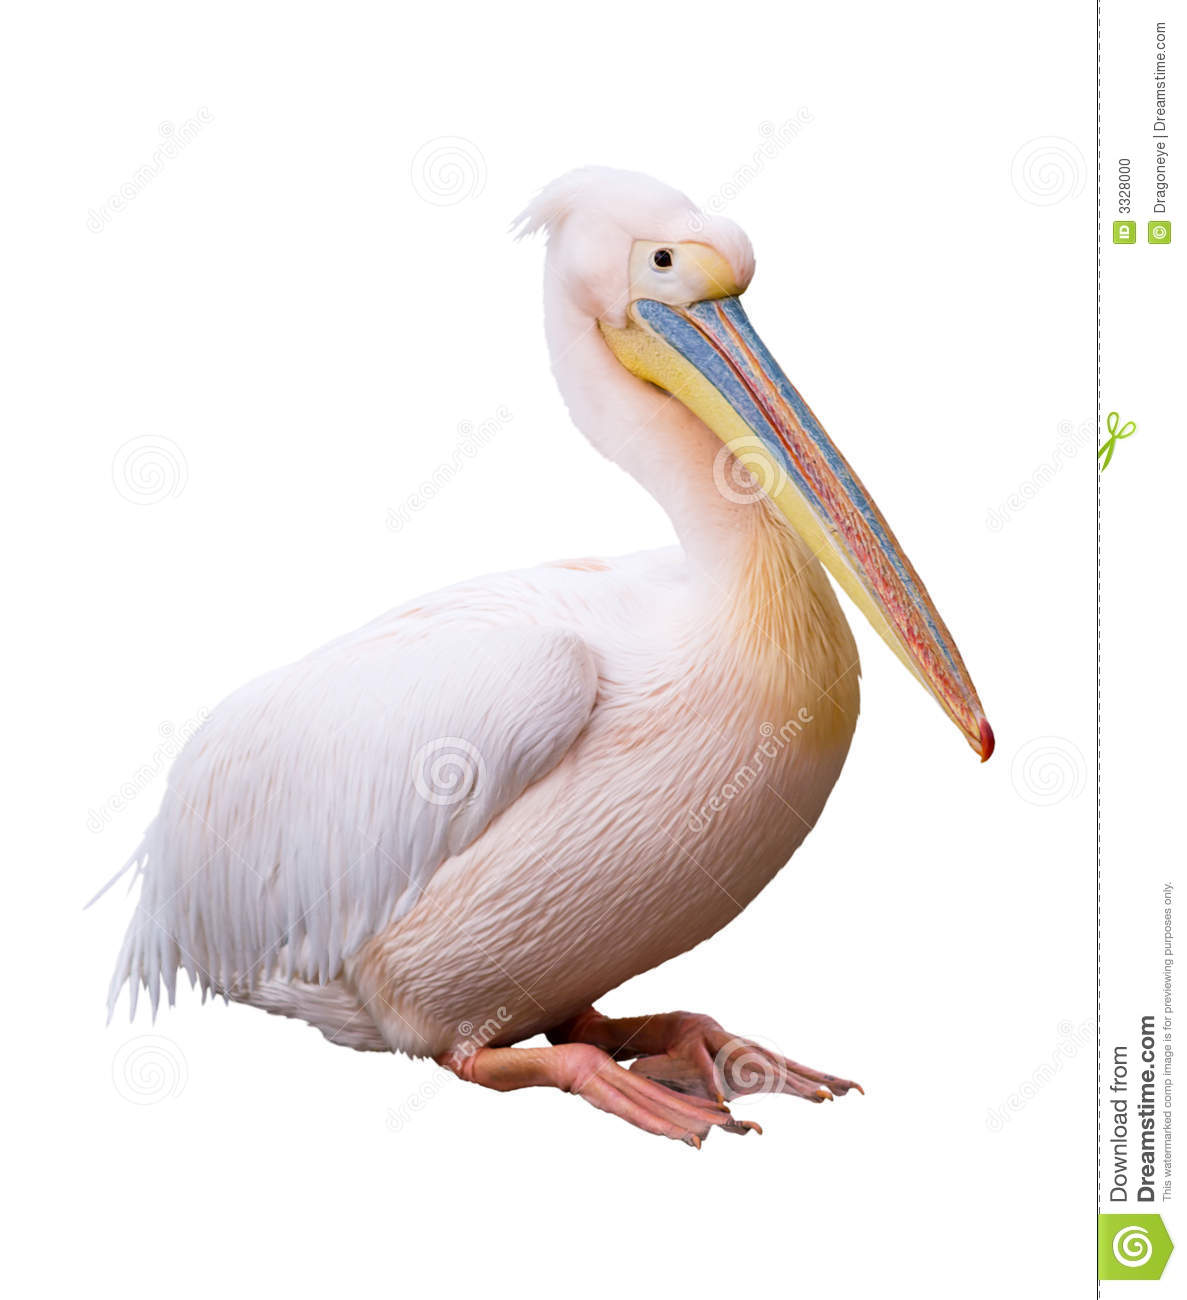 Great White Pelican Cutout Stock Photo.